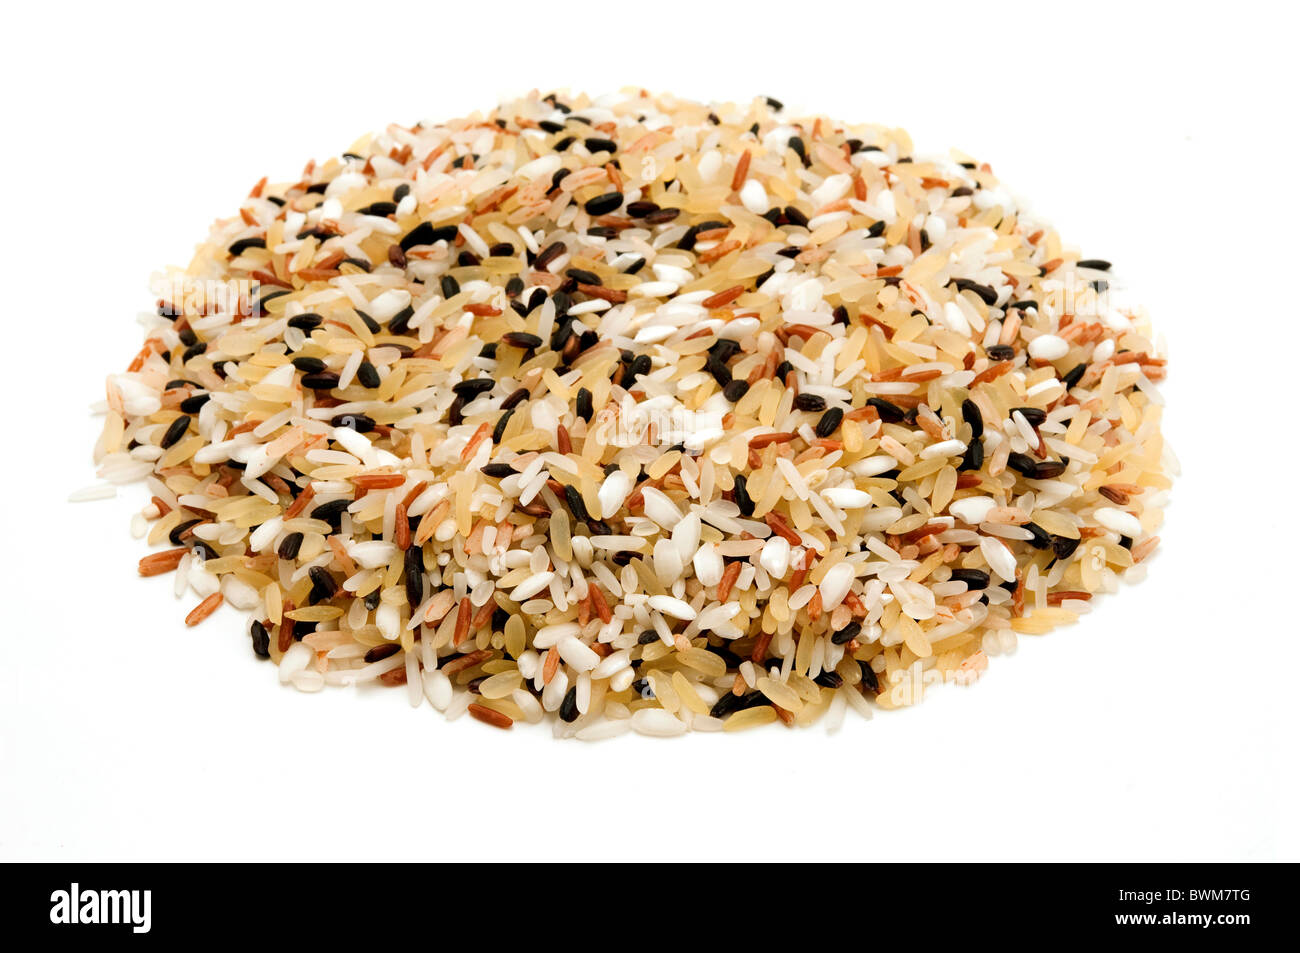 Mixed rice on a white background - Stock Image